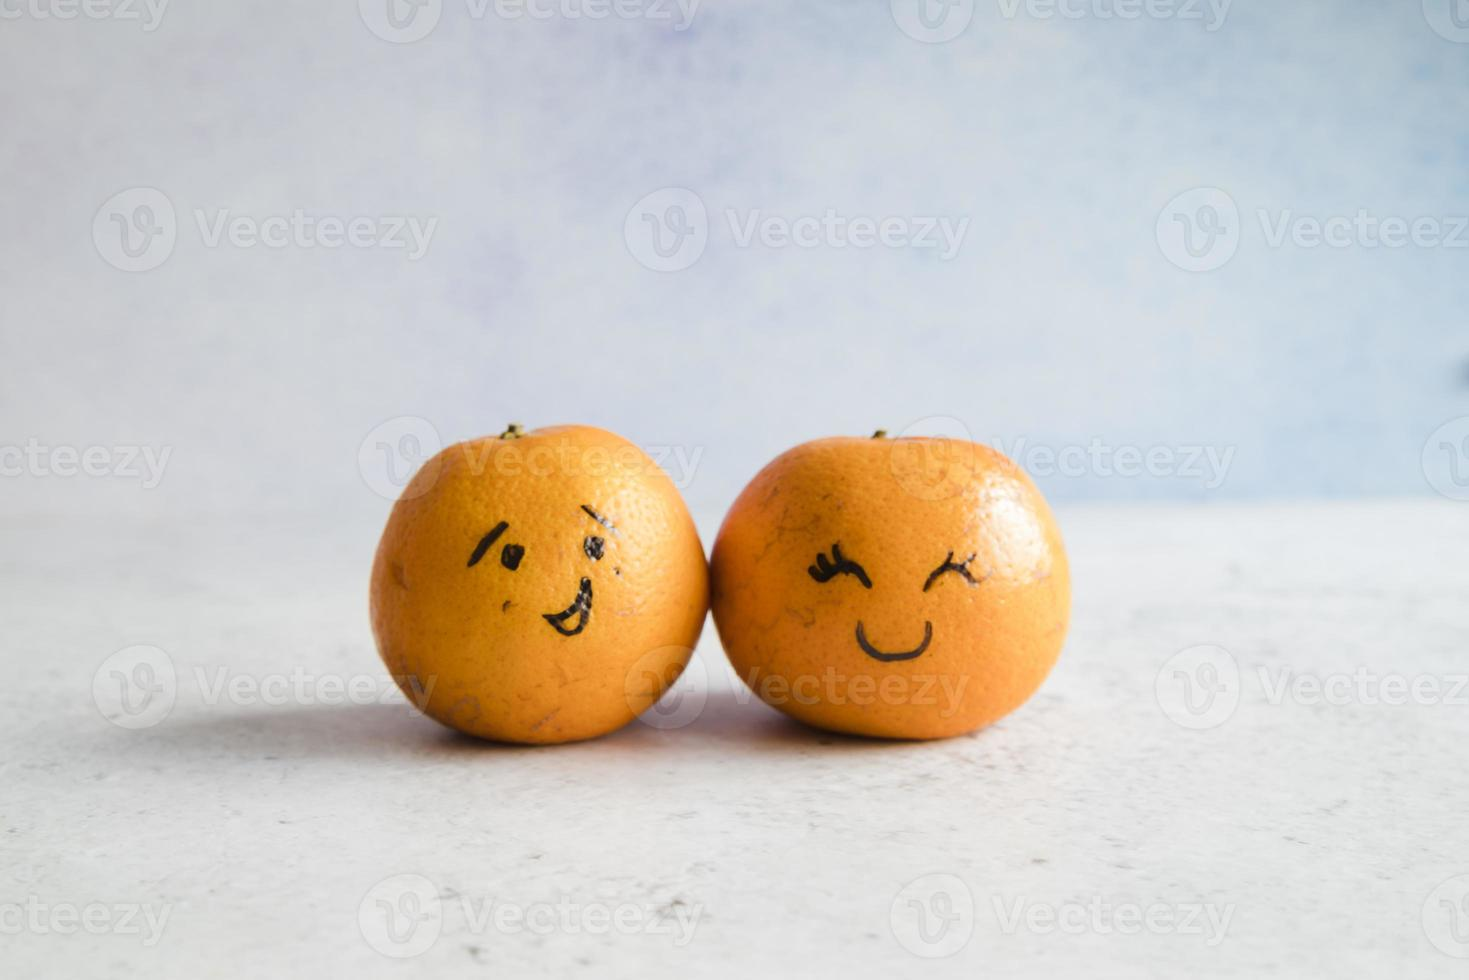 Tangerines with funny faces photo